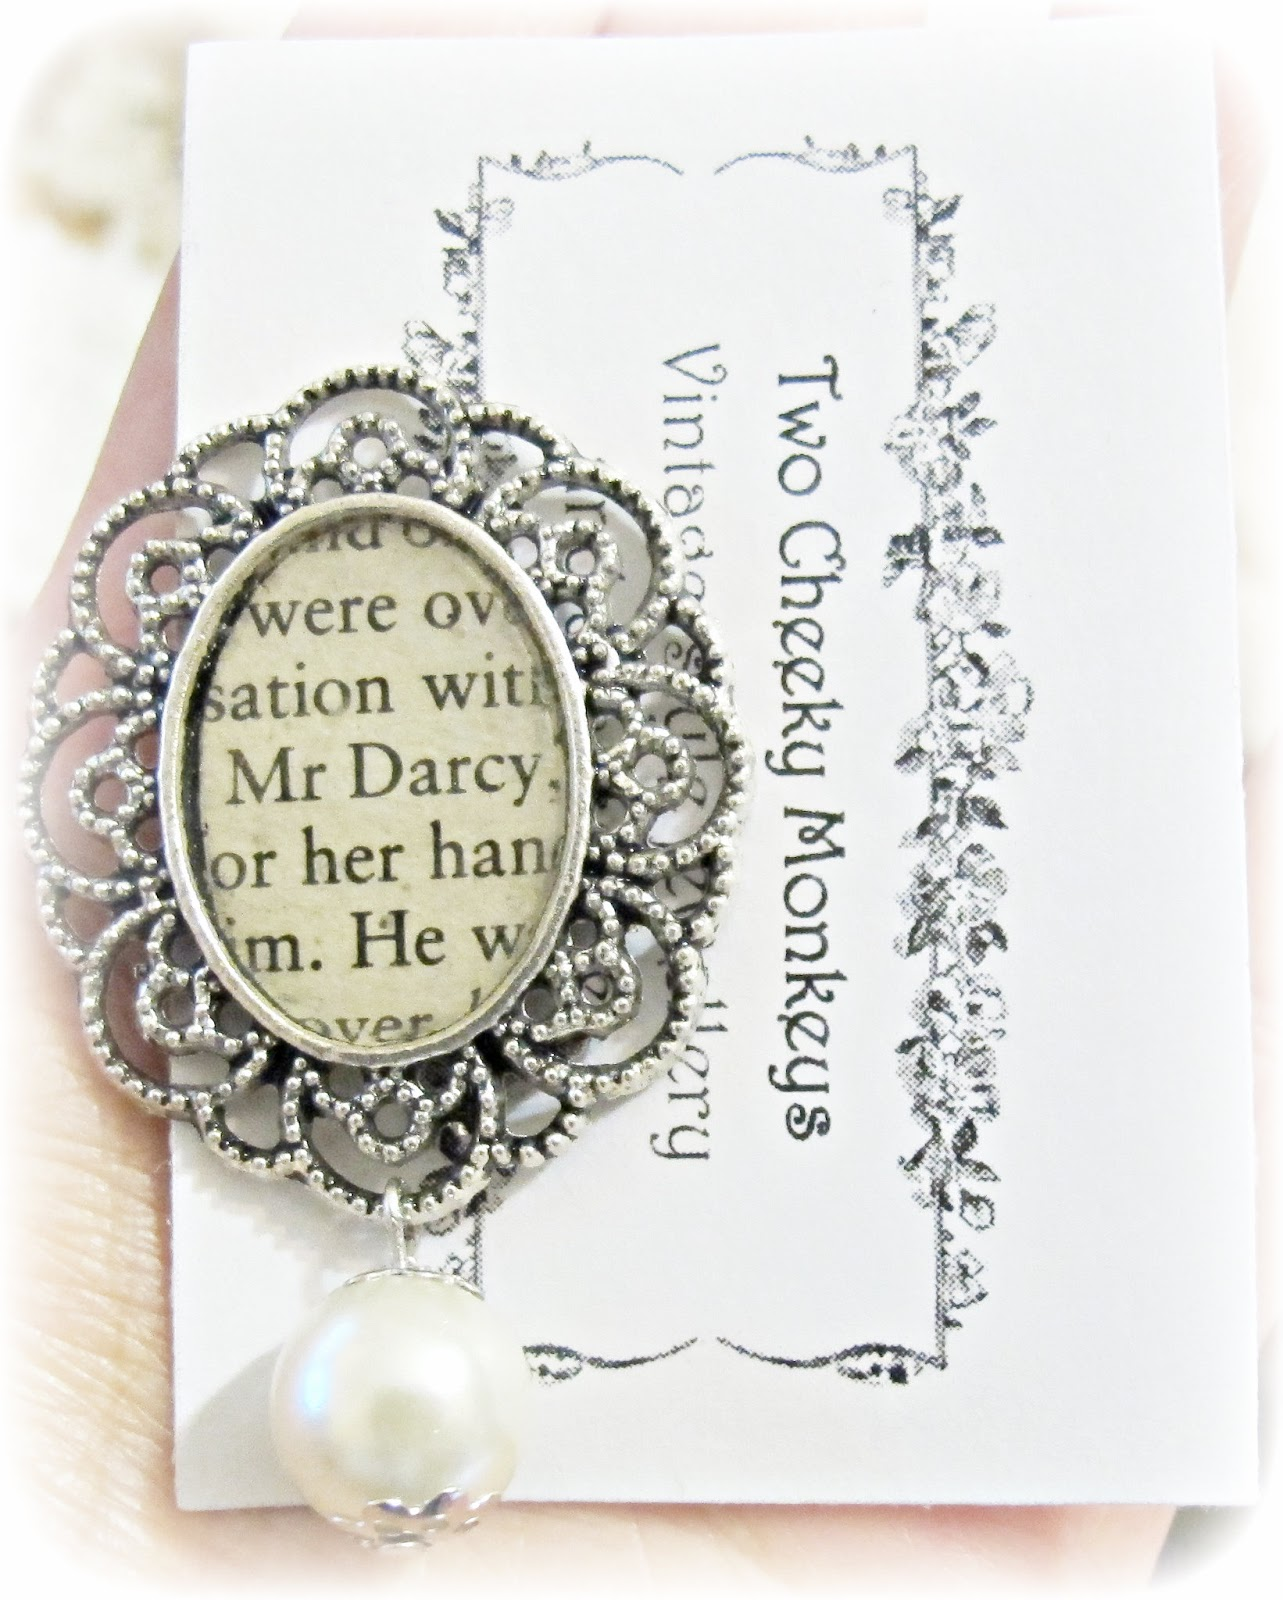 image mr darcy brooch bouquet pin ivory glass pearl silver jane austen pride and prejudice